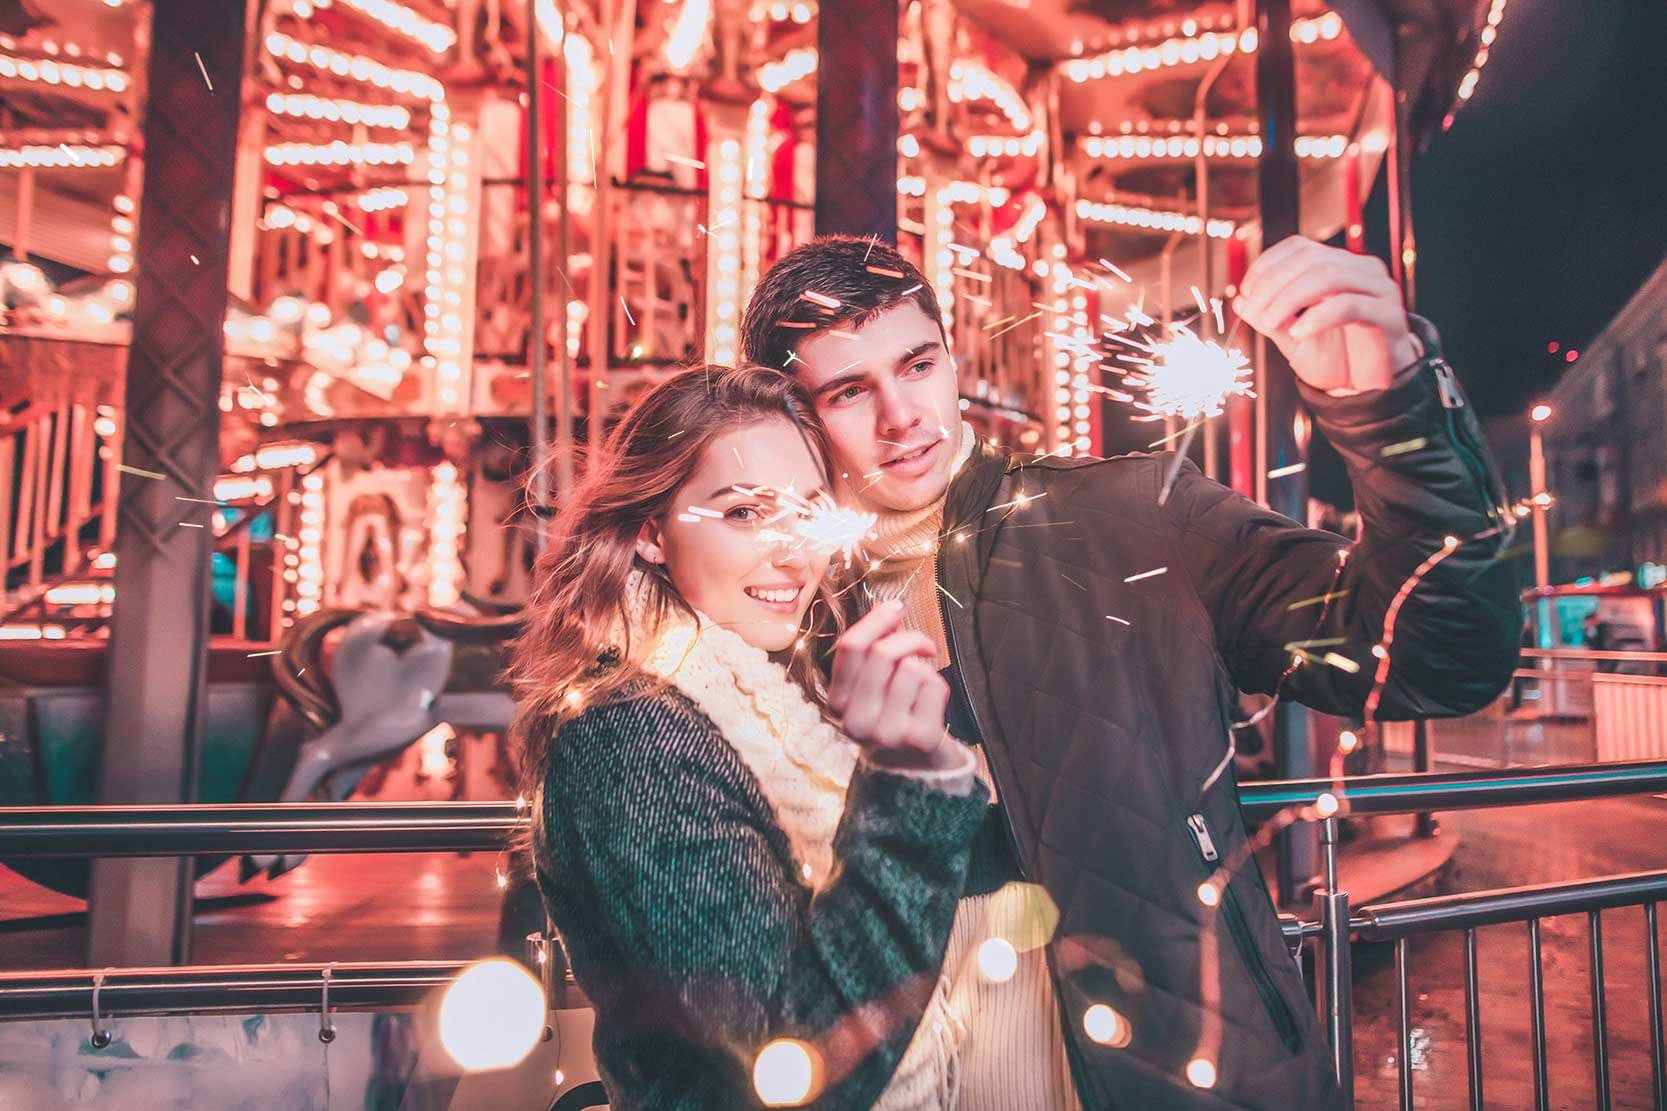 Beautiful Couples at Theme Park (After Presets Applied)